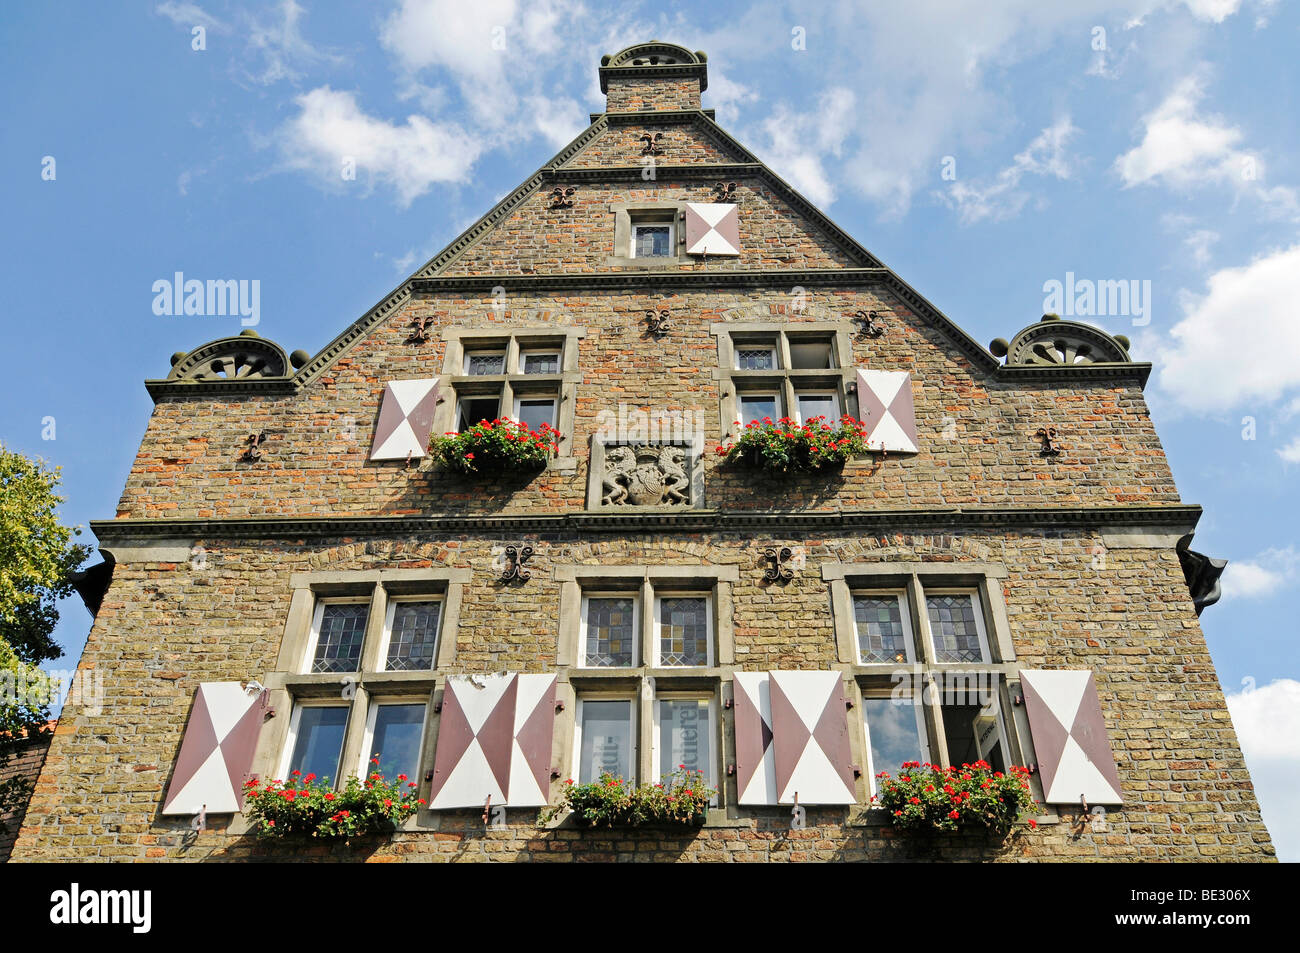 Steinhaus building, public library, historic old town, Werne, Kreis Unna district, North Rhine-Westphalia, Germany, - Stock Image